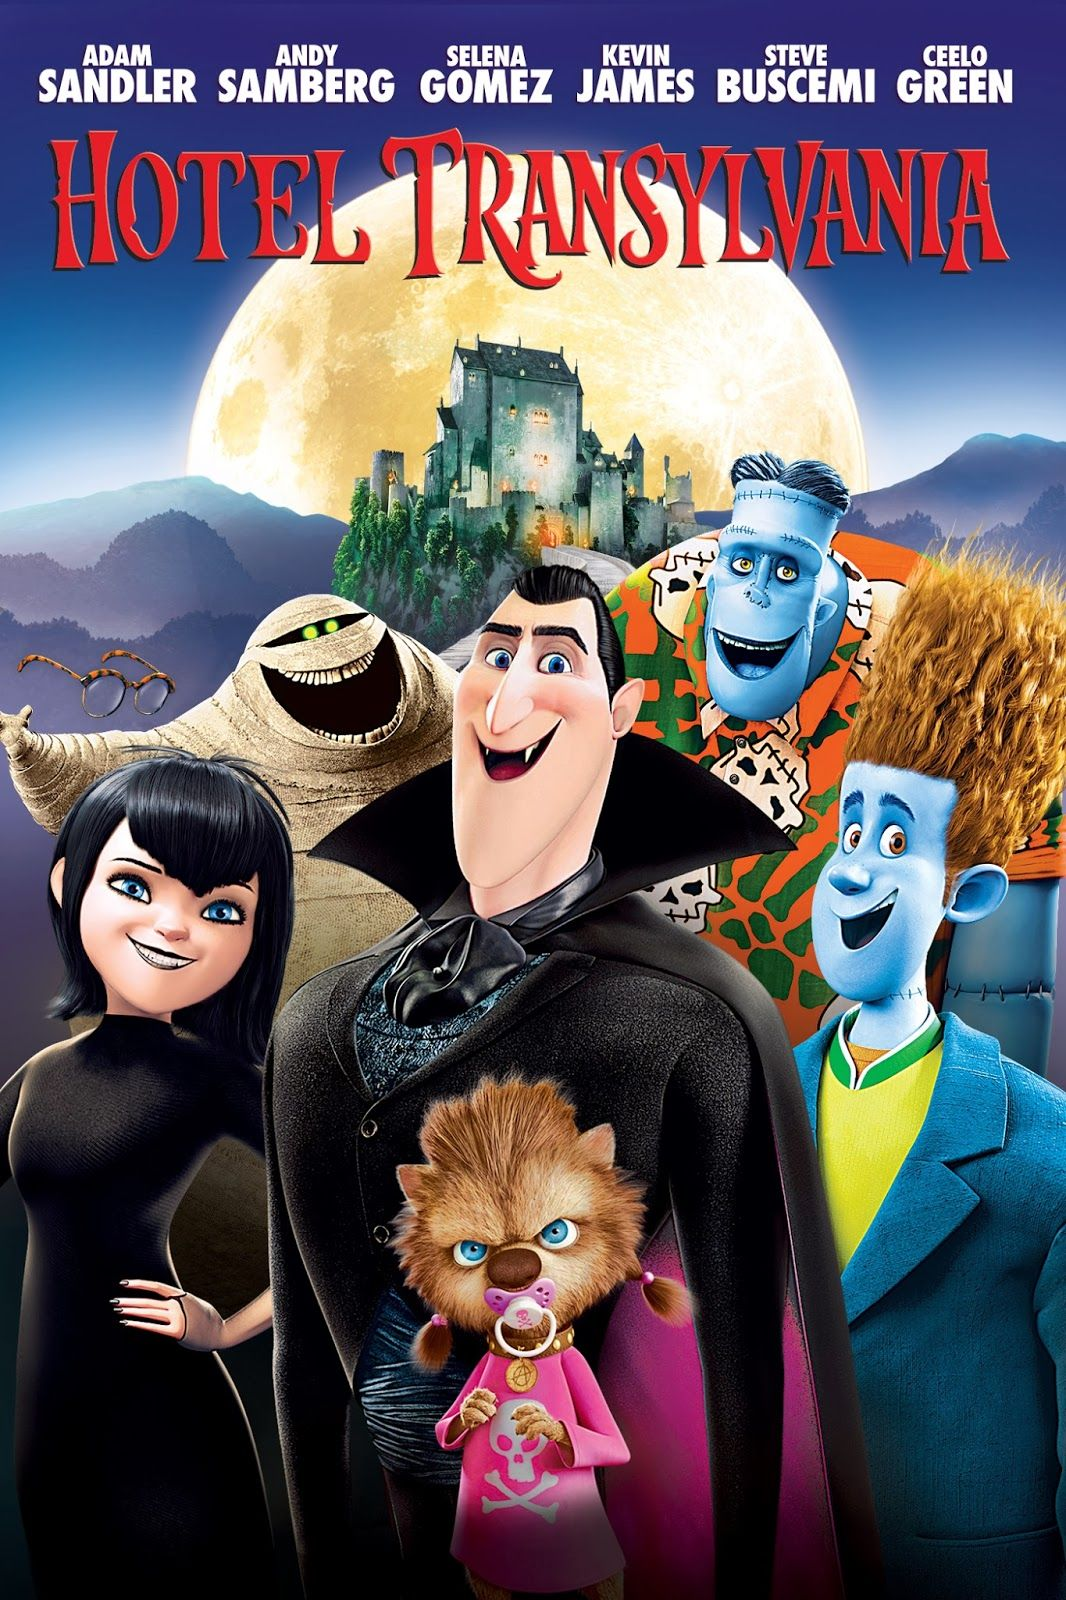 The Whole Gang At Hotel Transylvania It Was Our First Time On